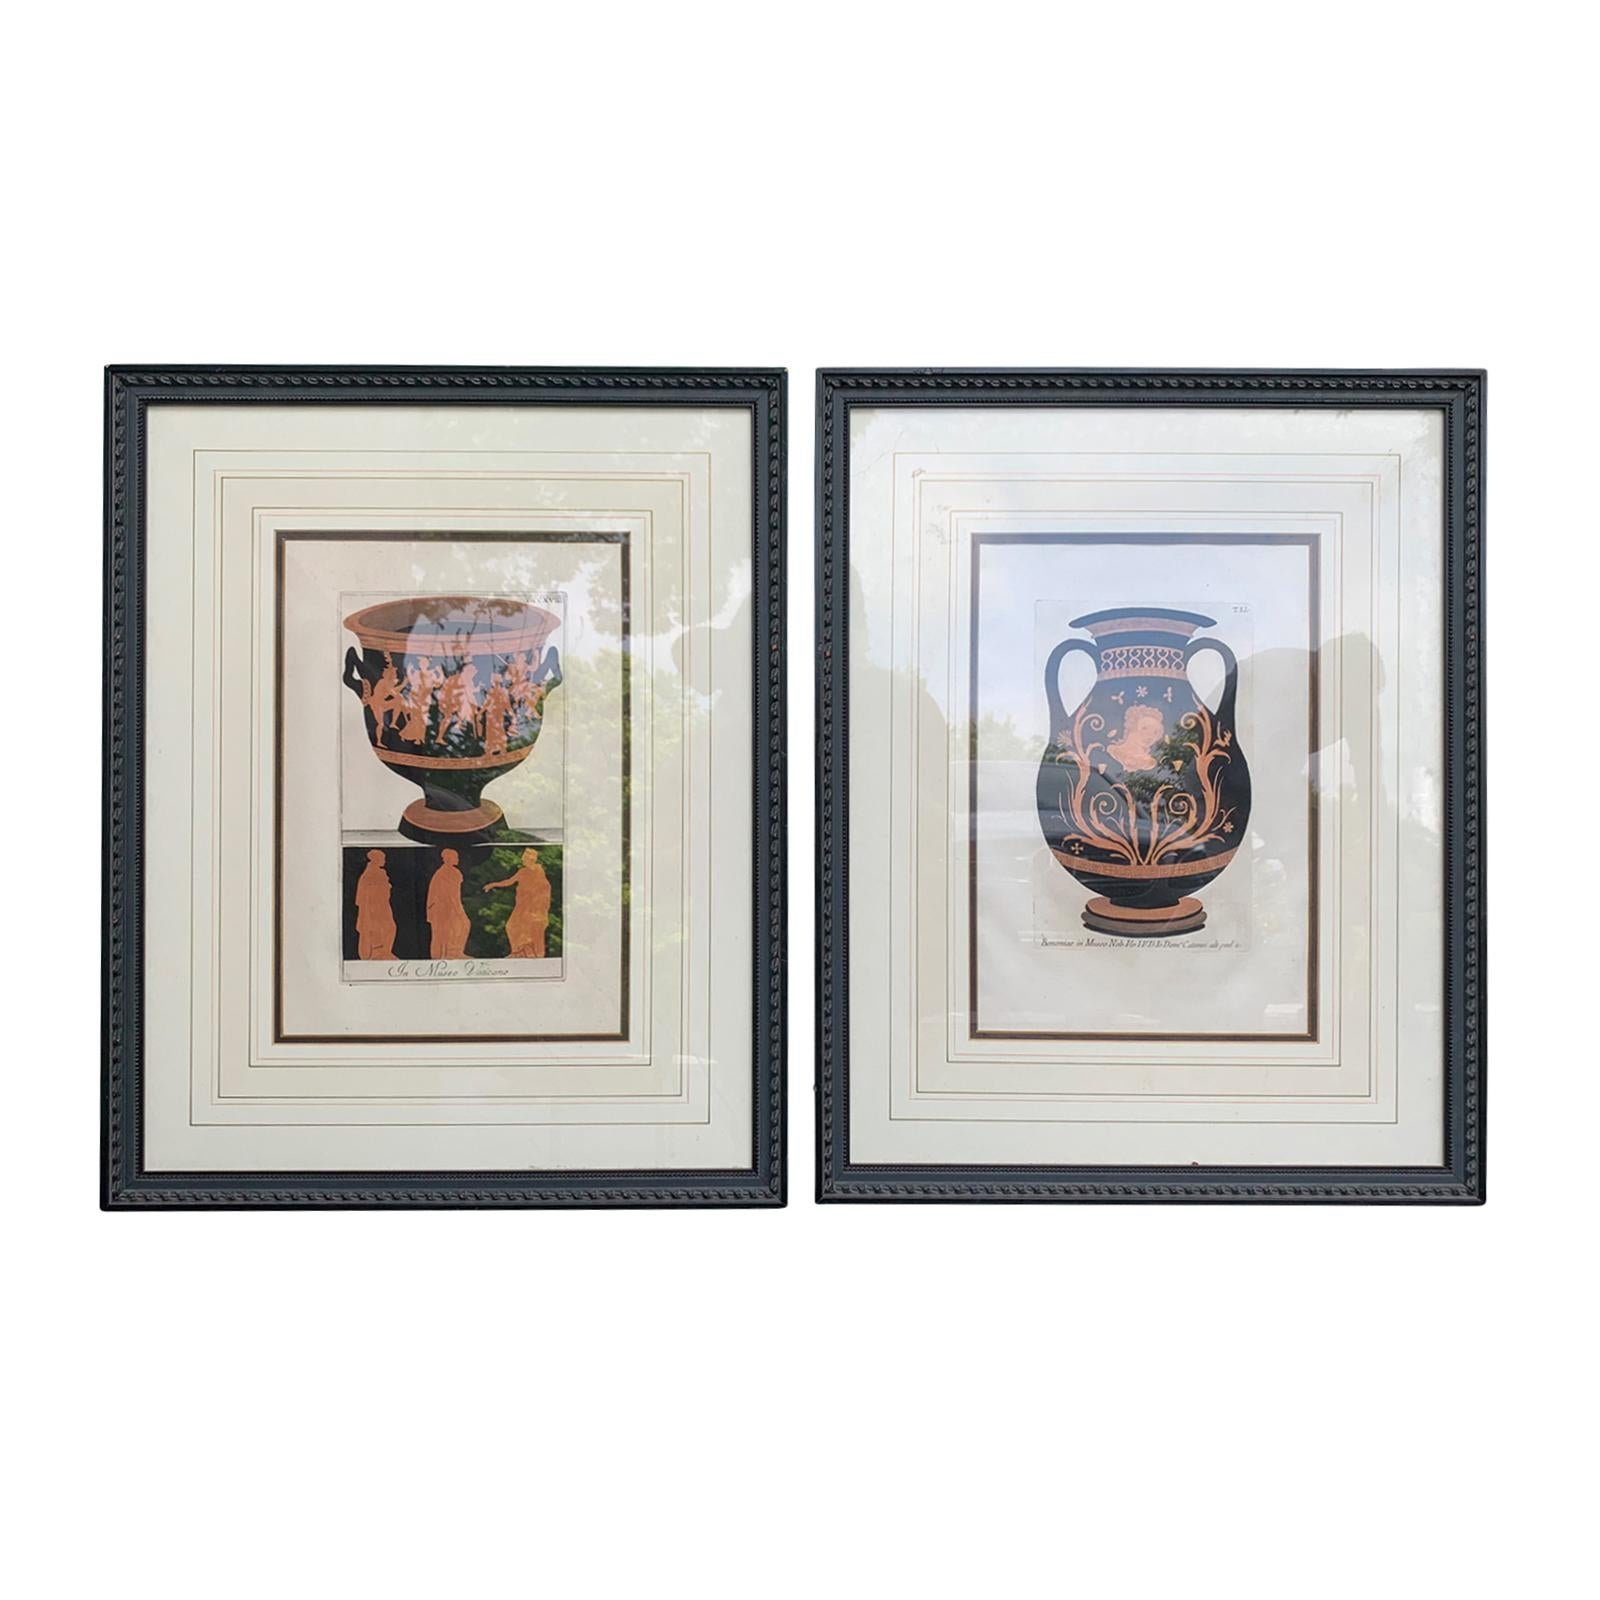 Pair of English Prints of Greek/Etruscan Vases by Sir William Hamilton